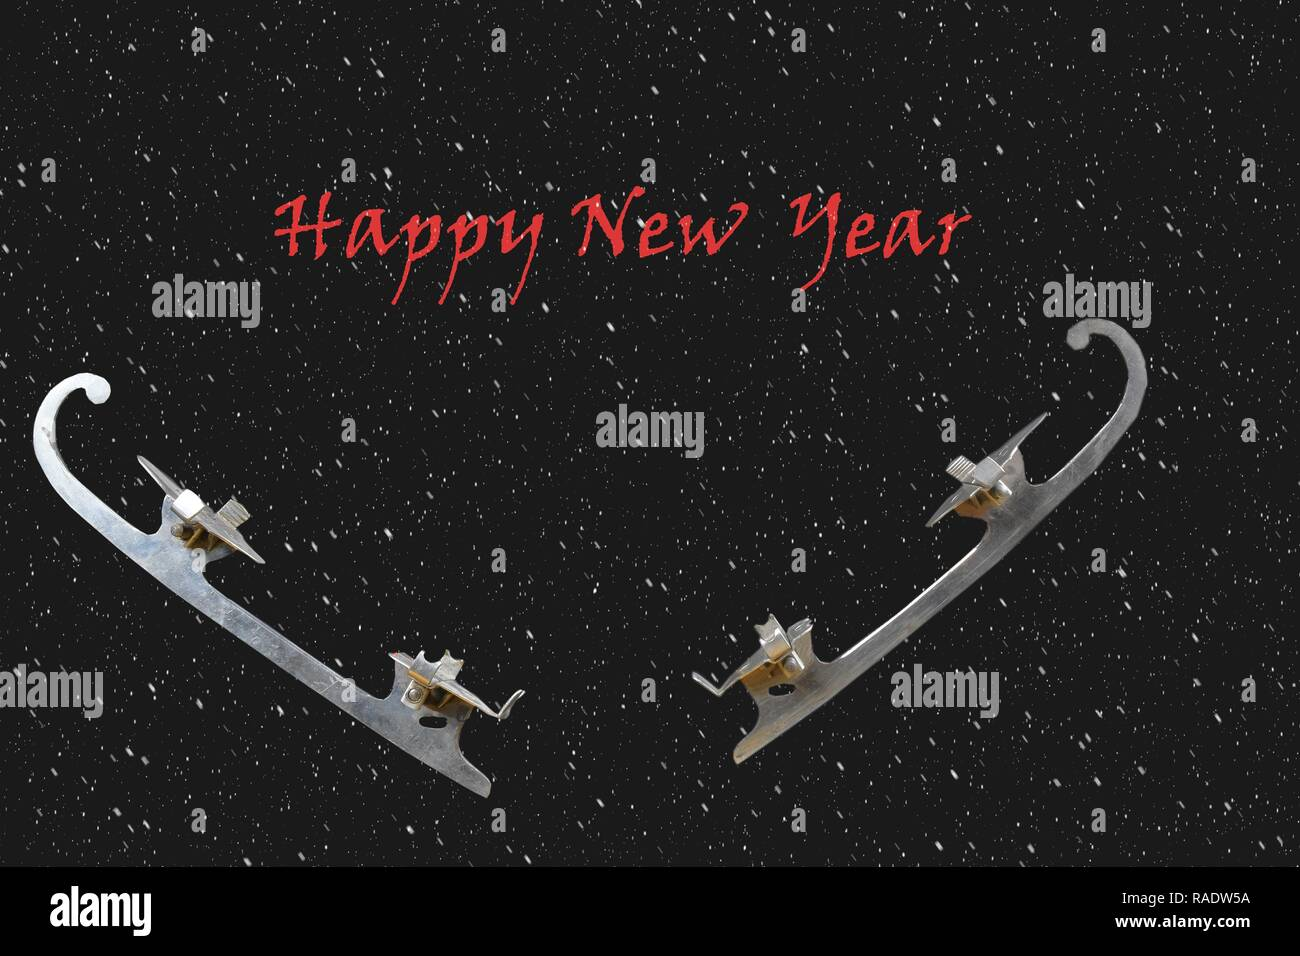 Vintage ice-skate on black background with snow effect. Text - Happy New Year. Copy space - Stock Image